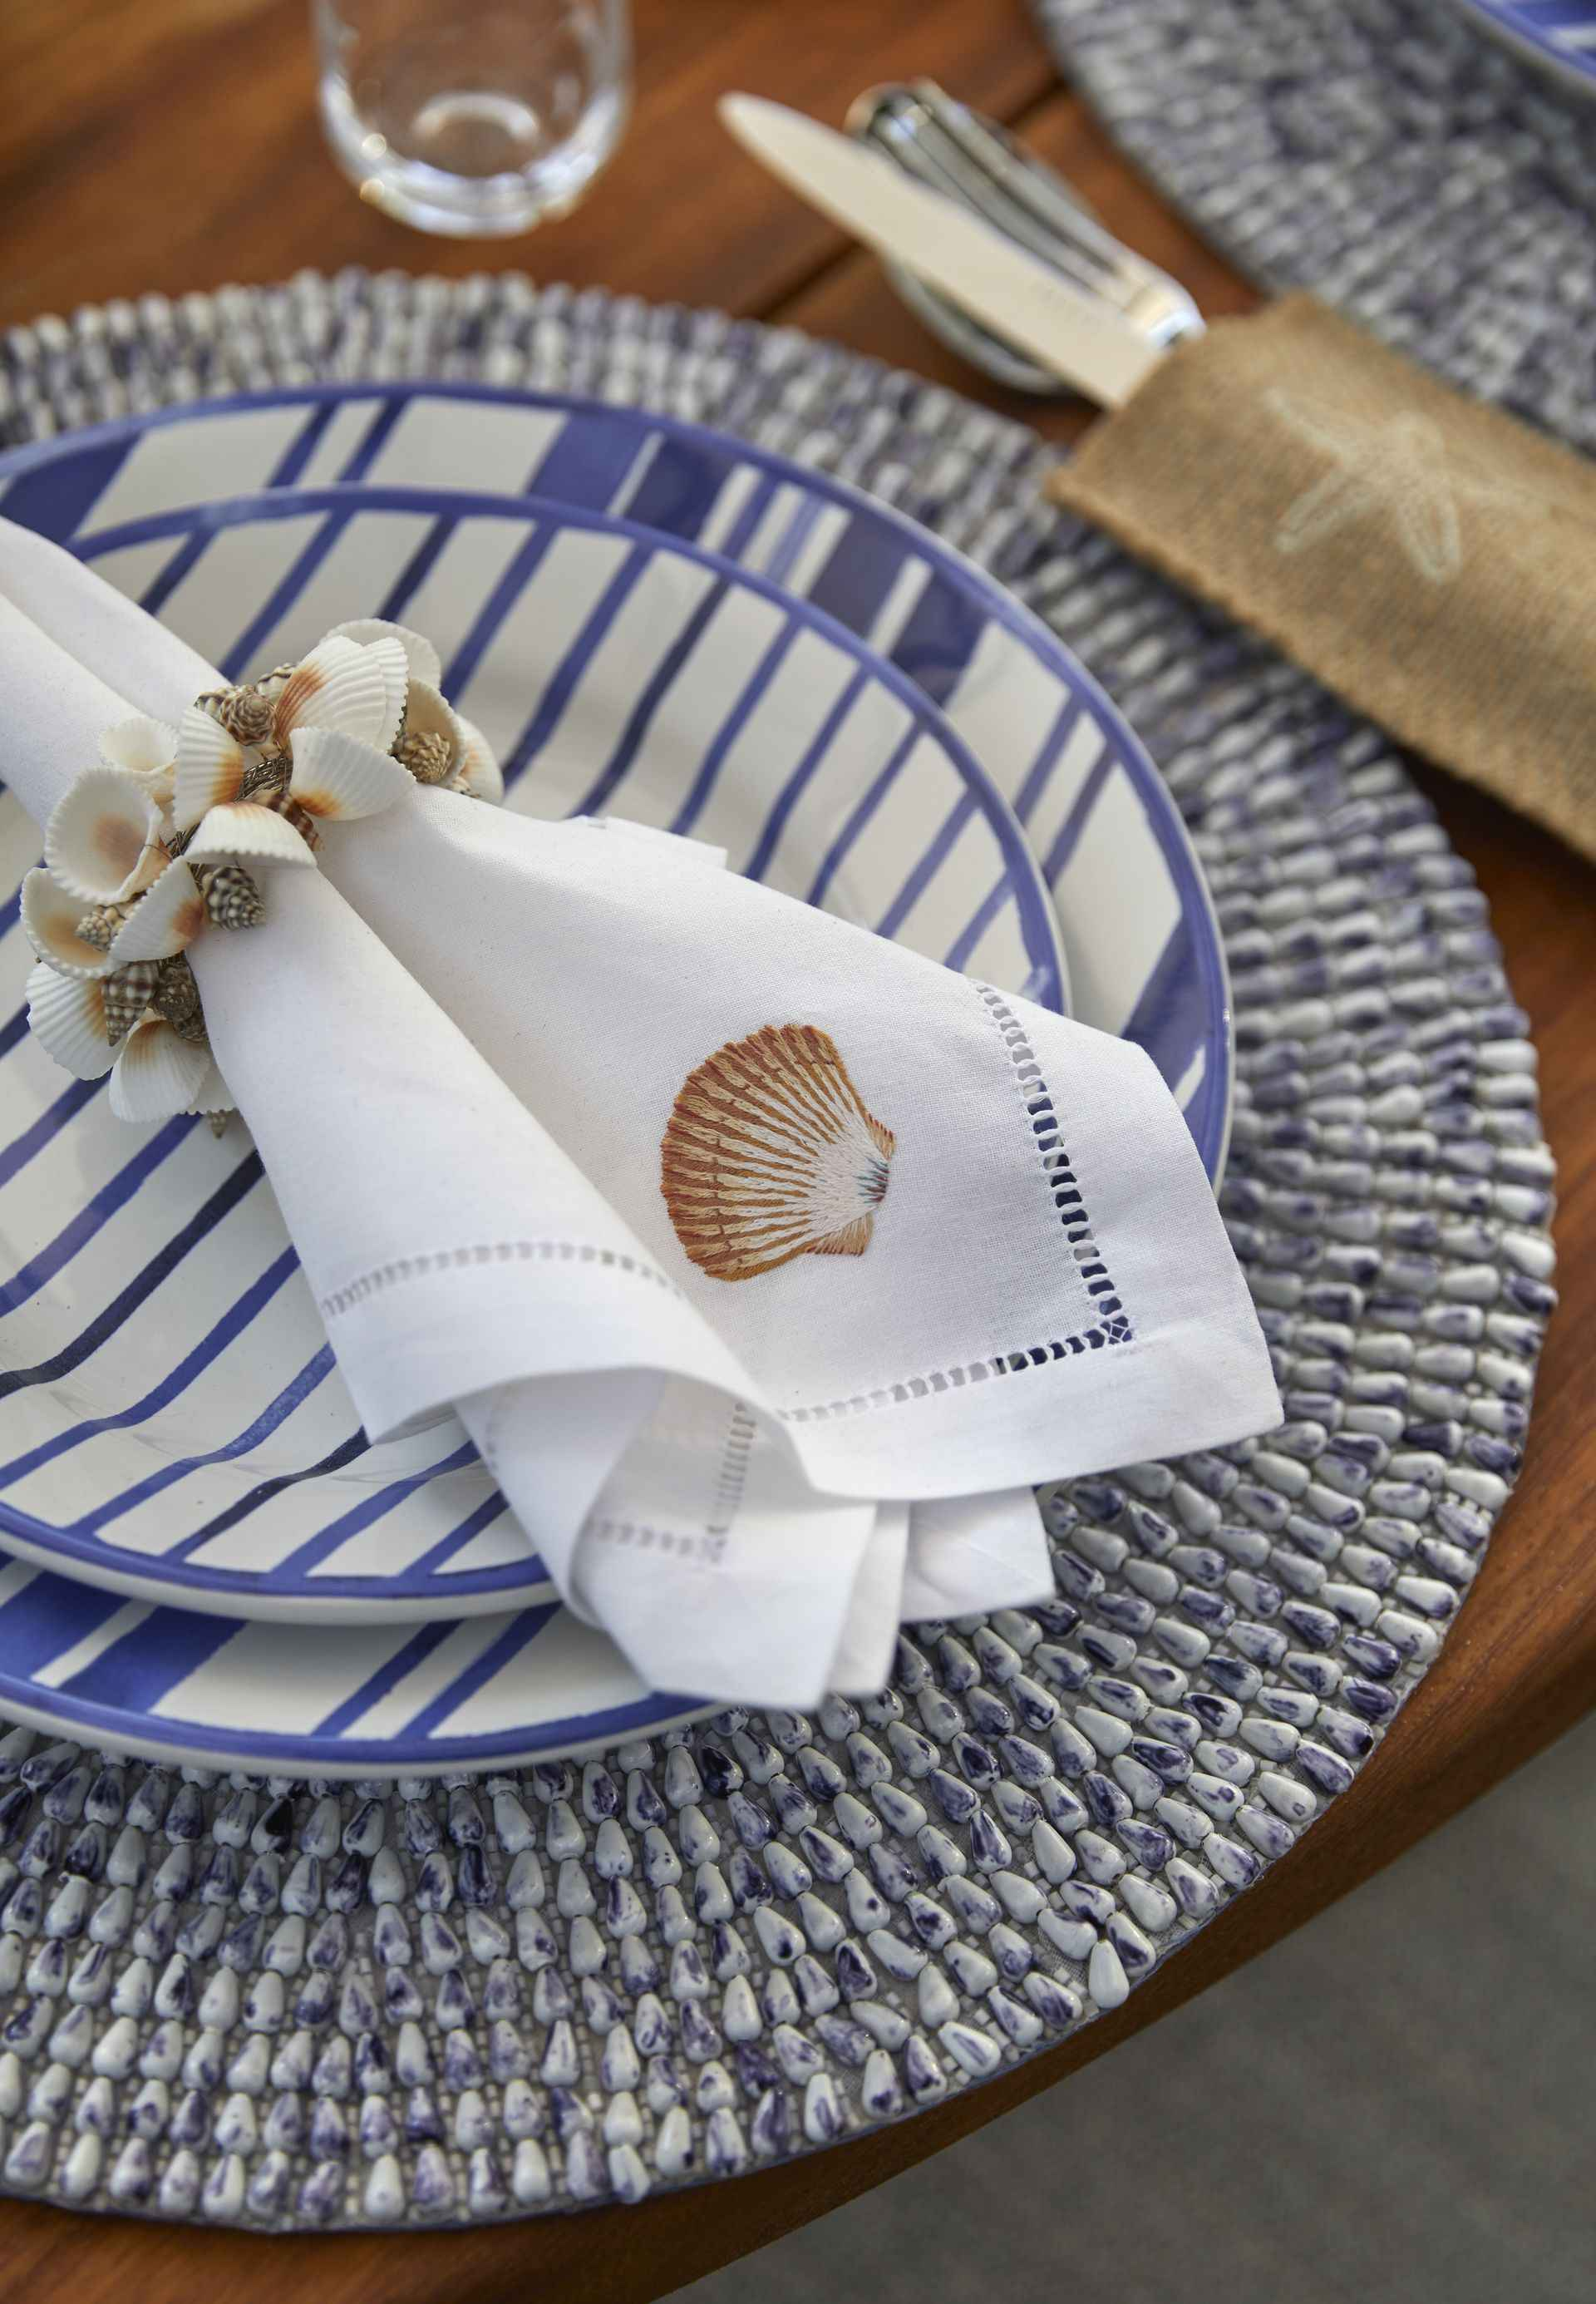 Mountain Ash House cloth napkins on plate